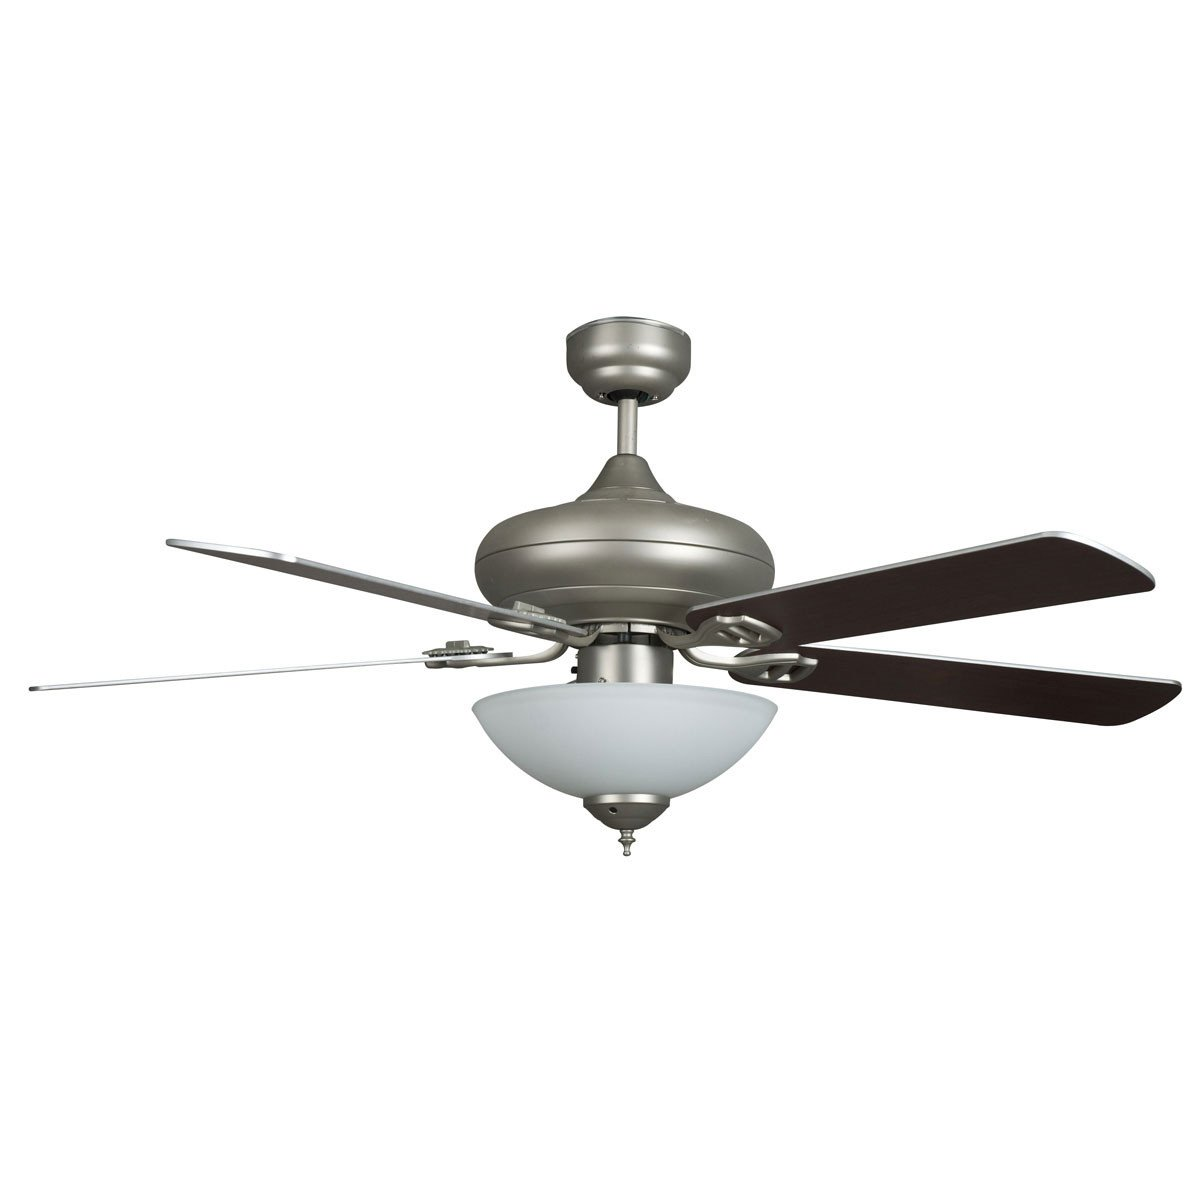 "Concord Fans 52"" Valore Modern Satin Nickel Quick Connect Ceiling Fan with Light"